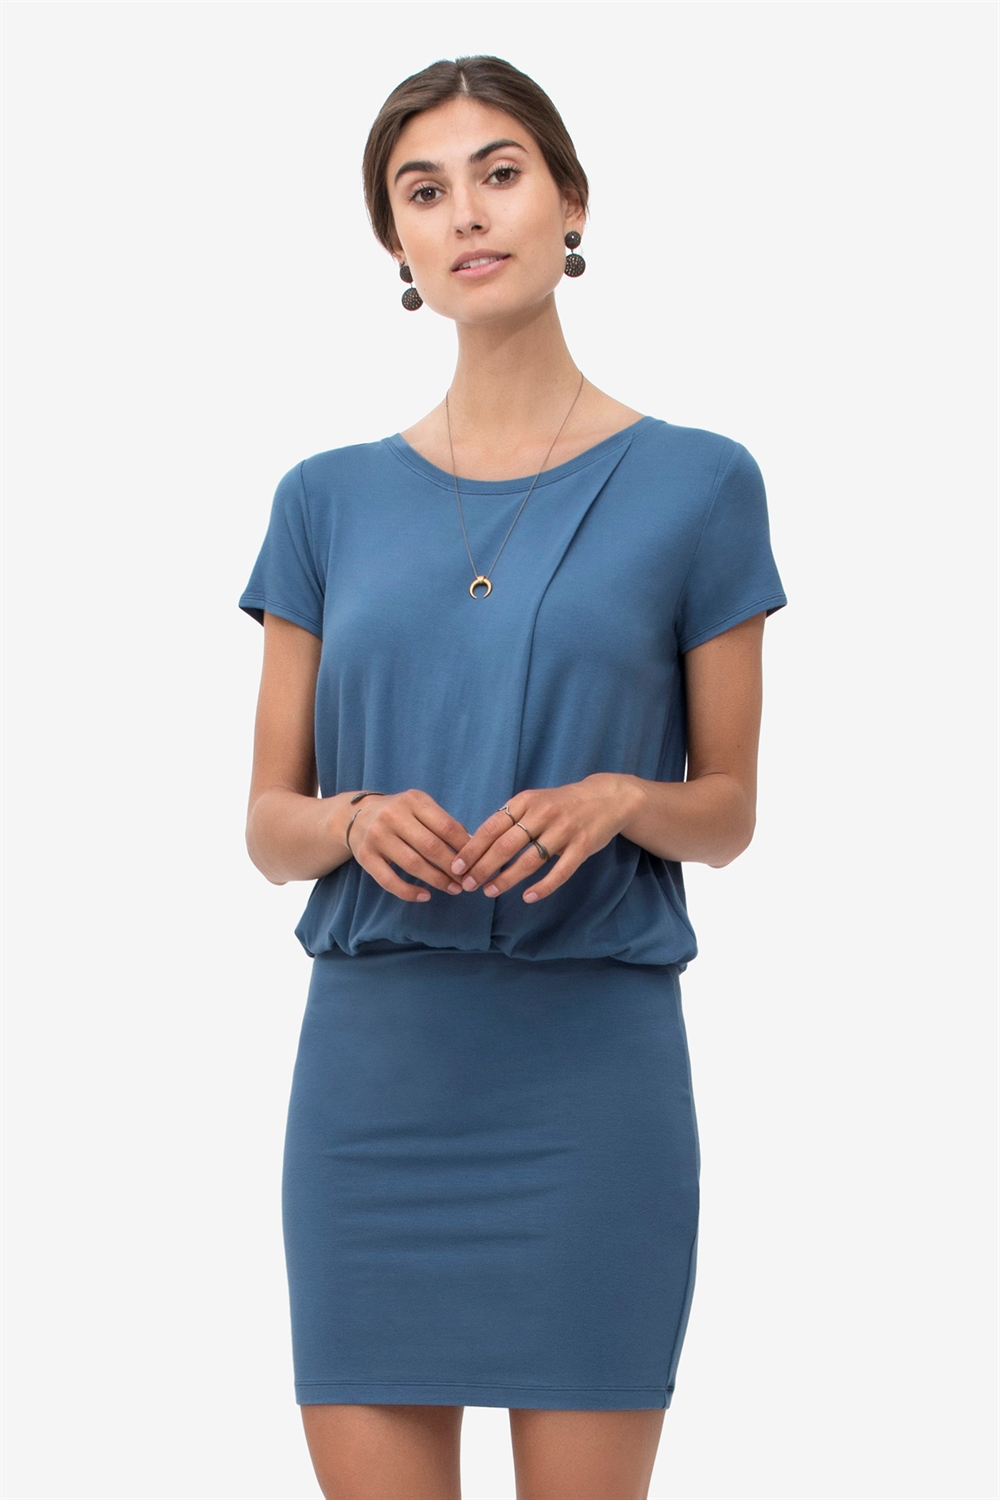 Blue nursing dress with loose top and tight skirt